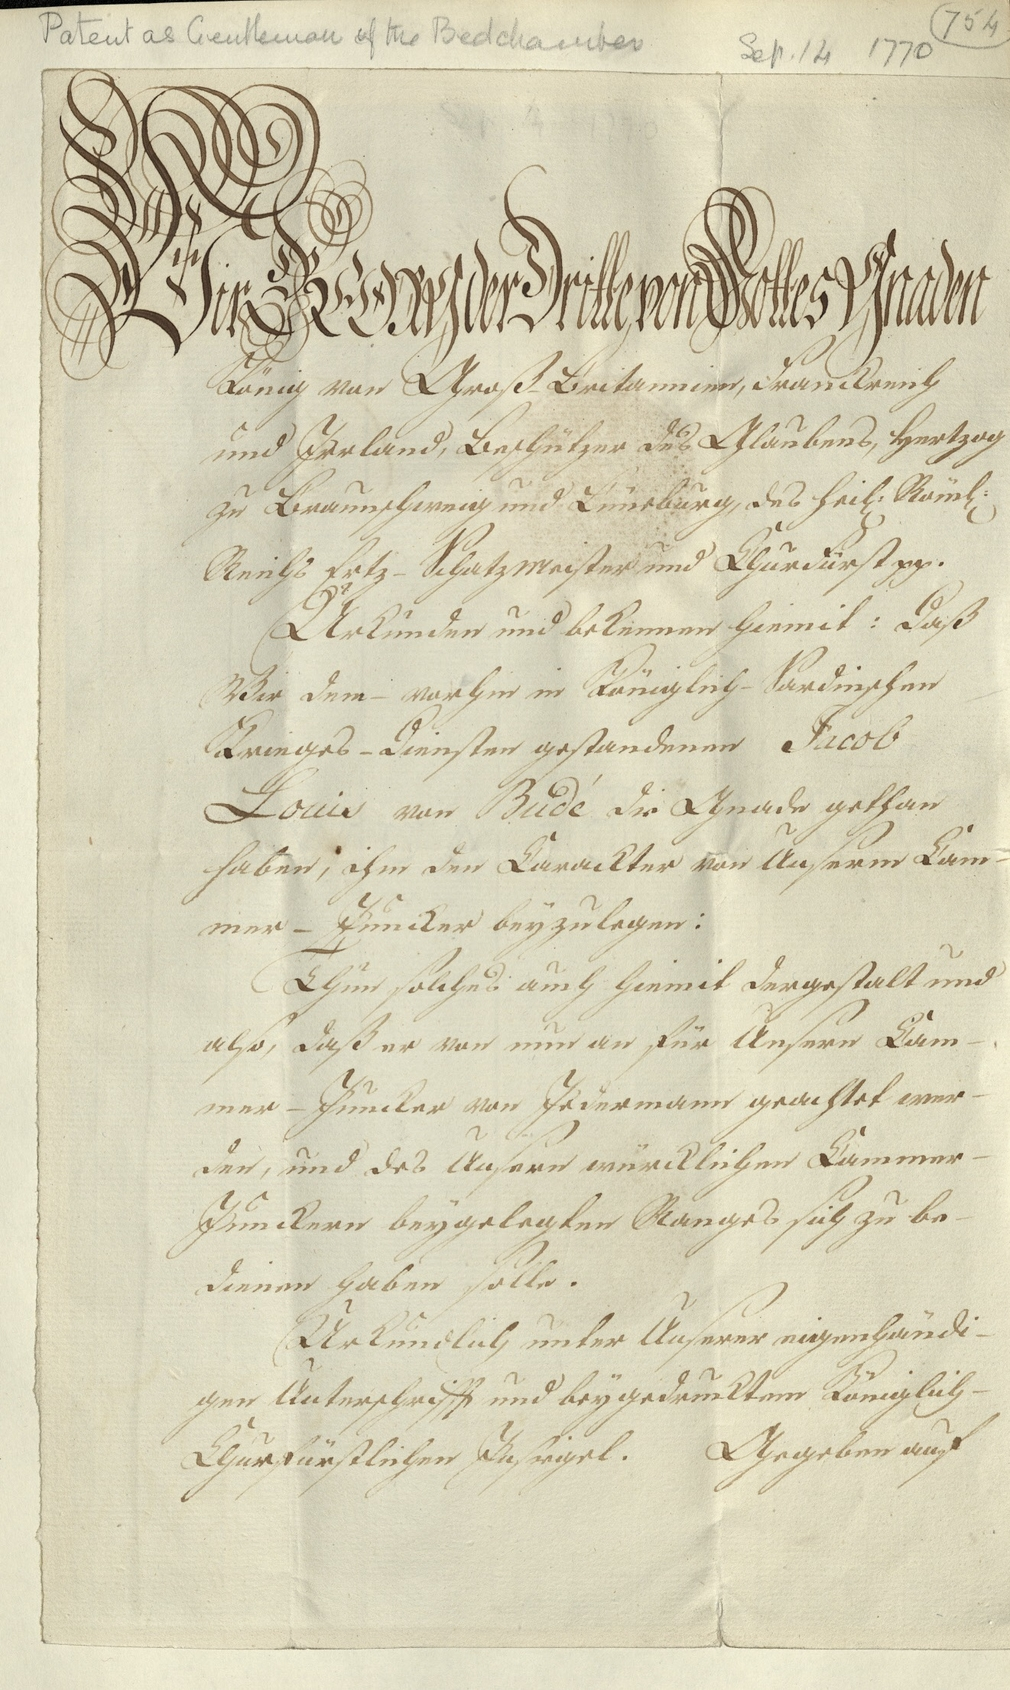 Manuscript pattent relating to General Jacob de Budé